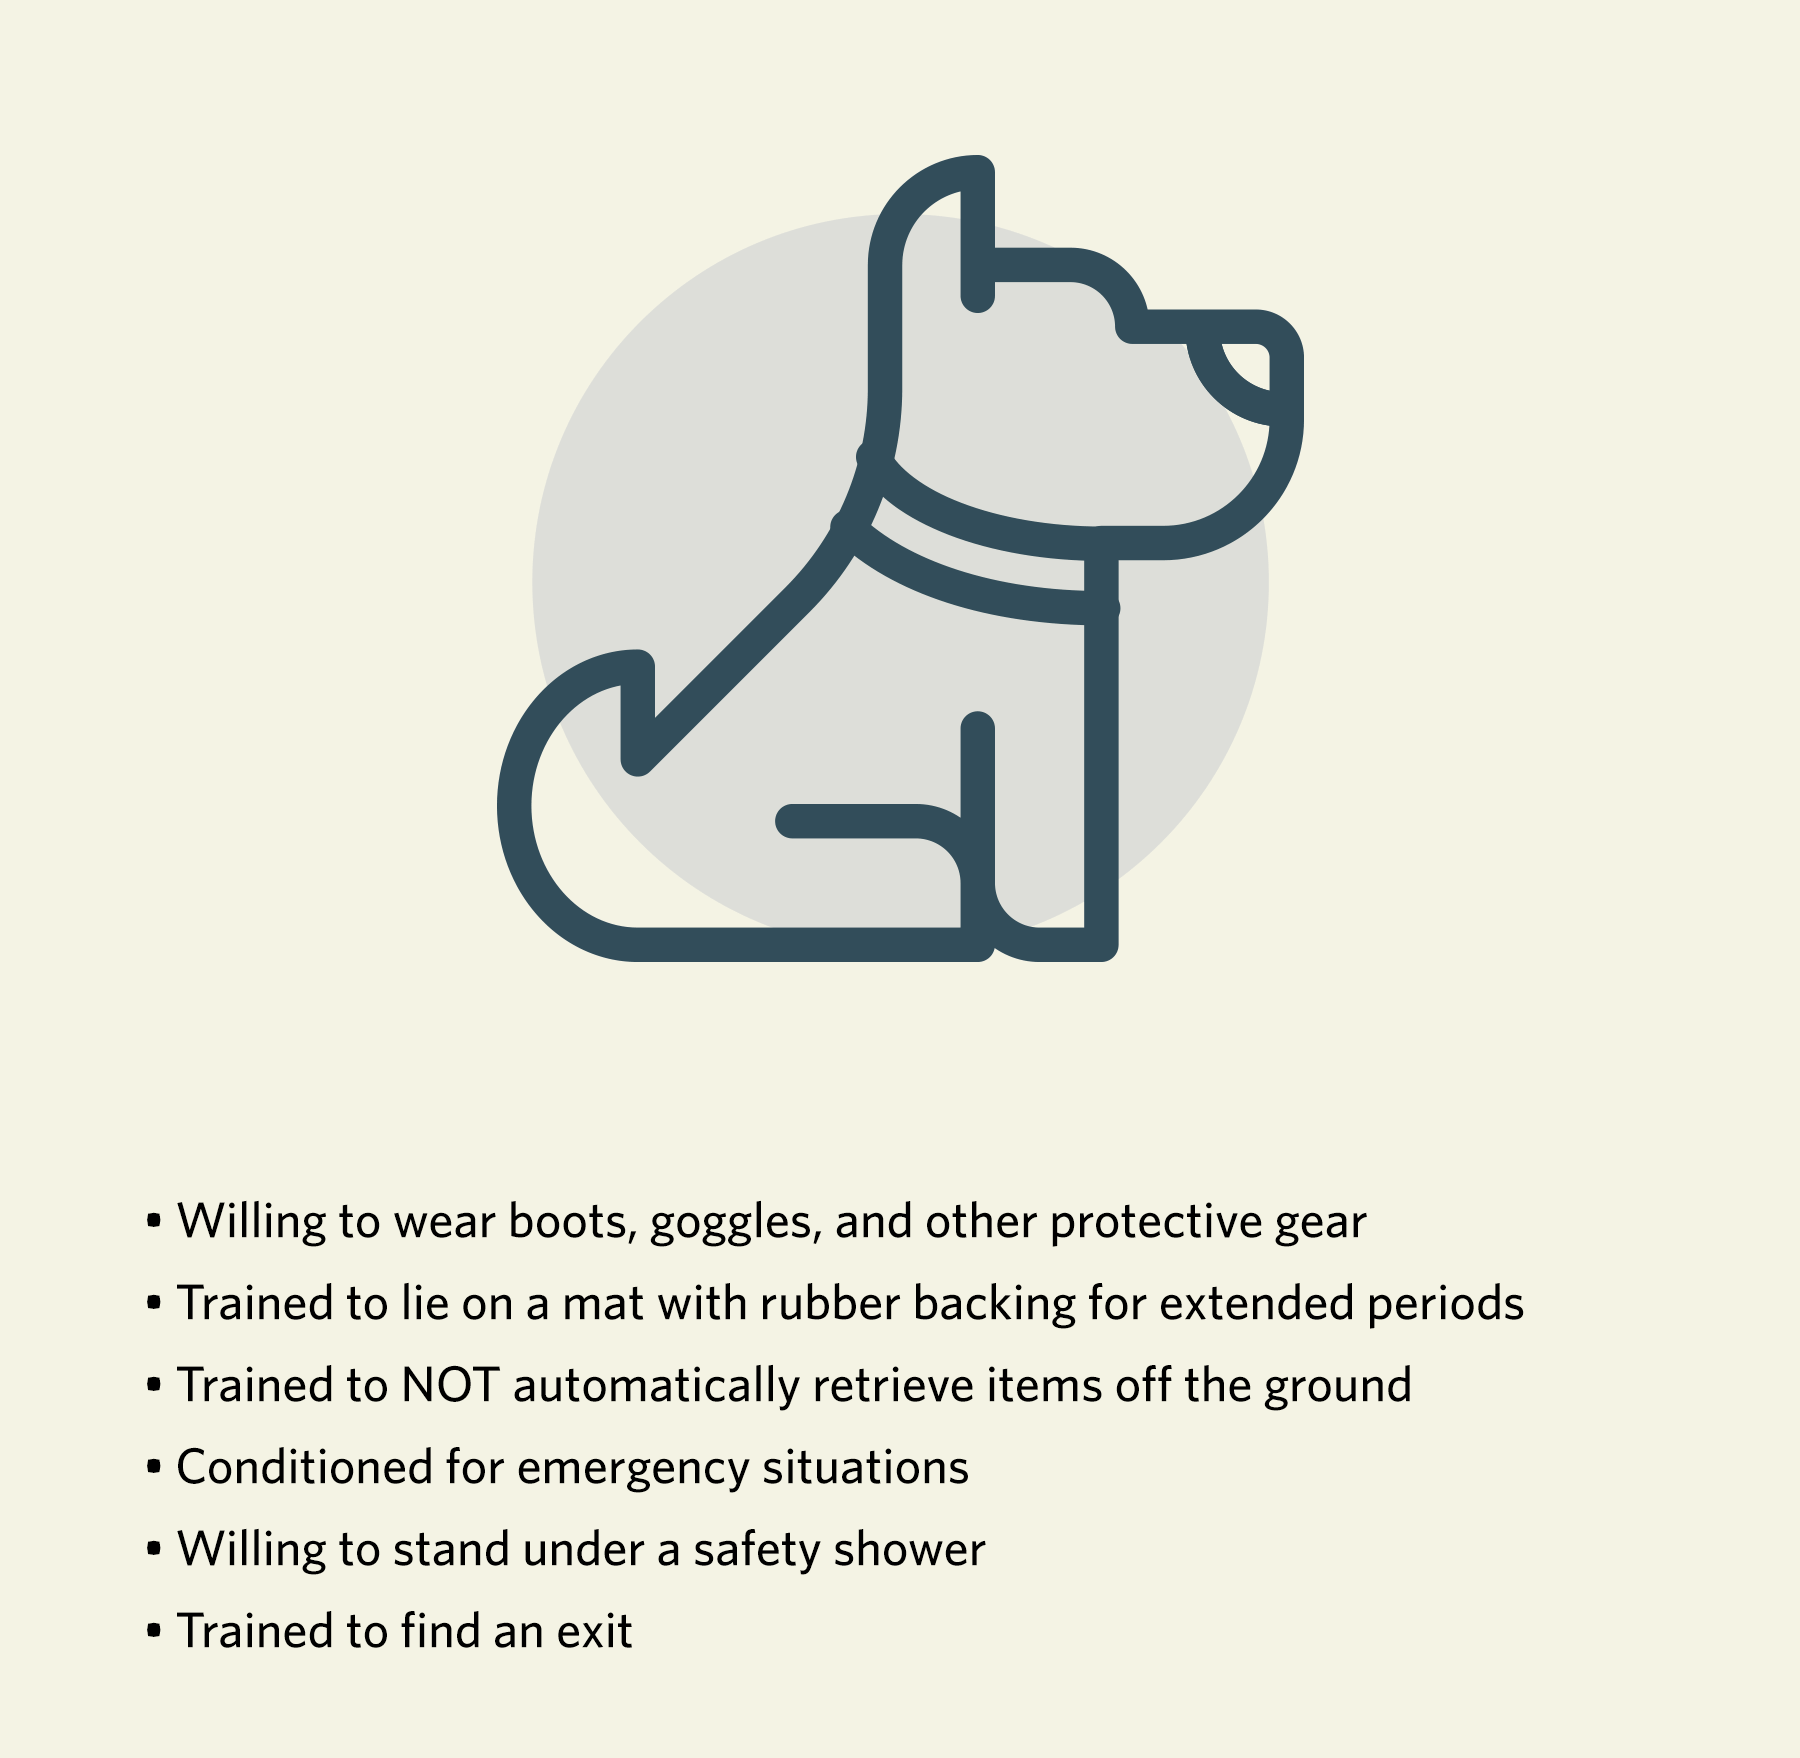 When Should Service Dogs Be Admitted Into The Lab